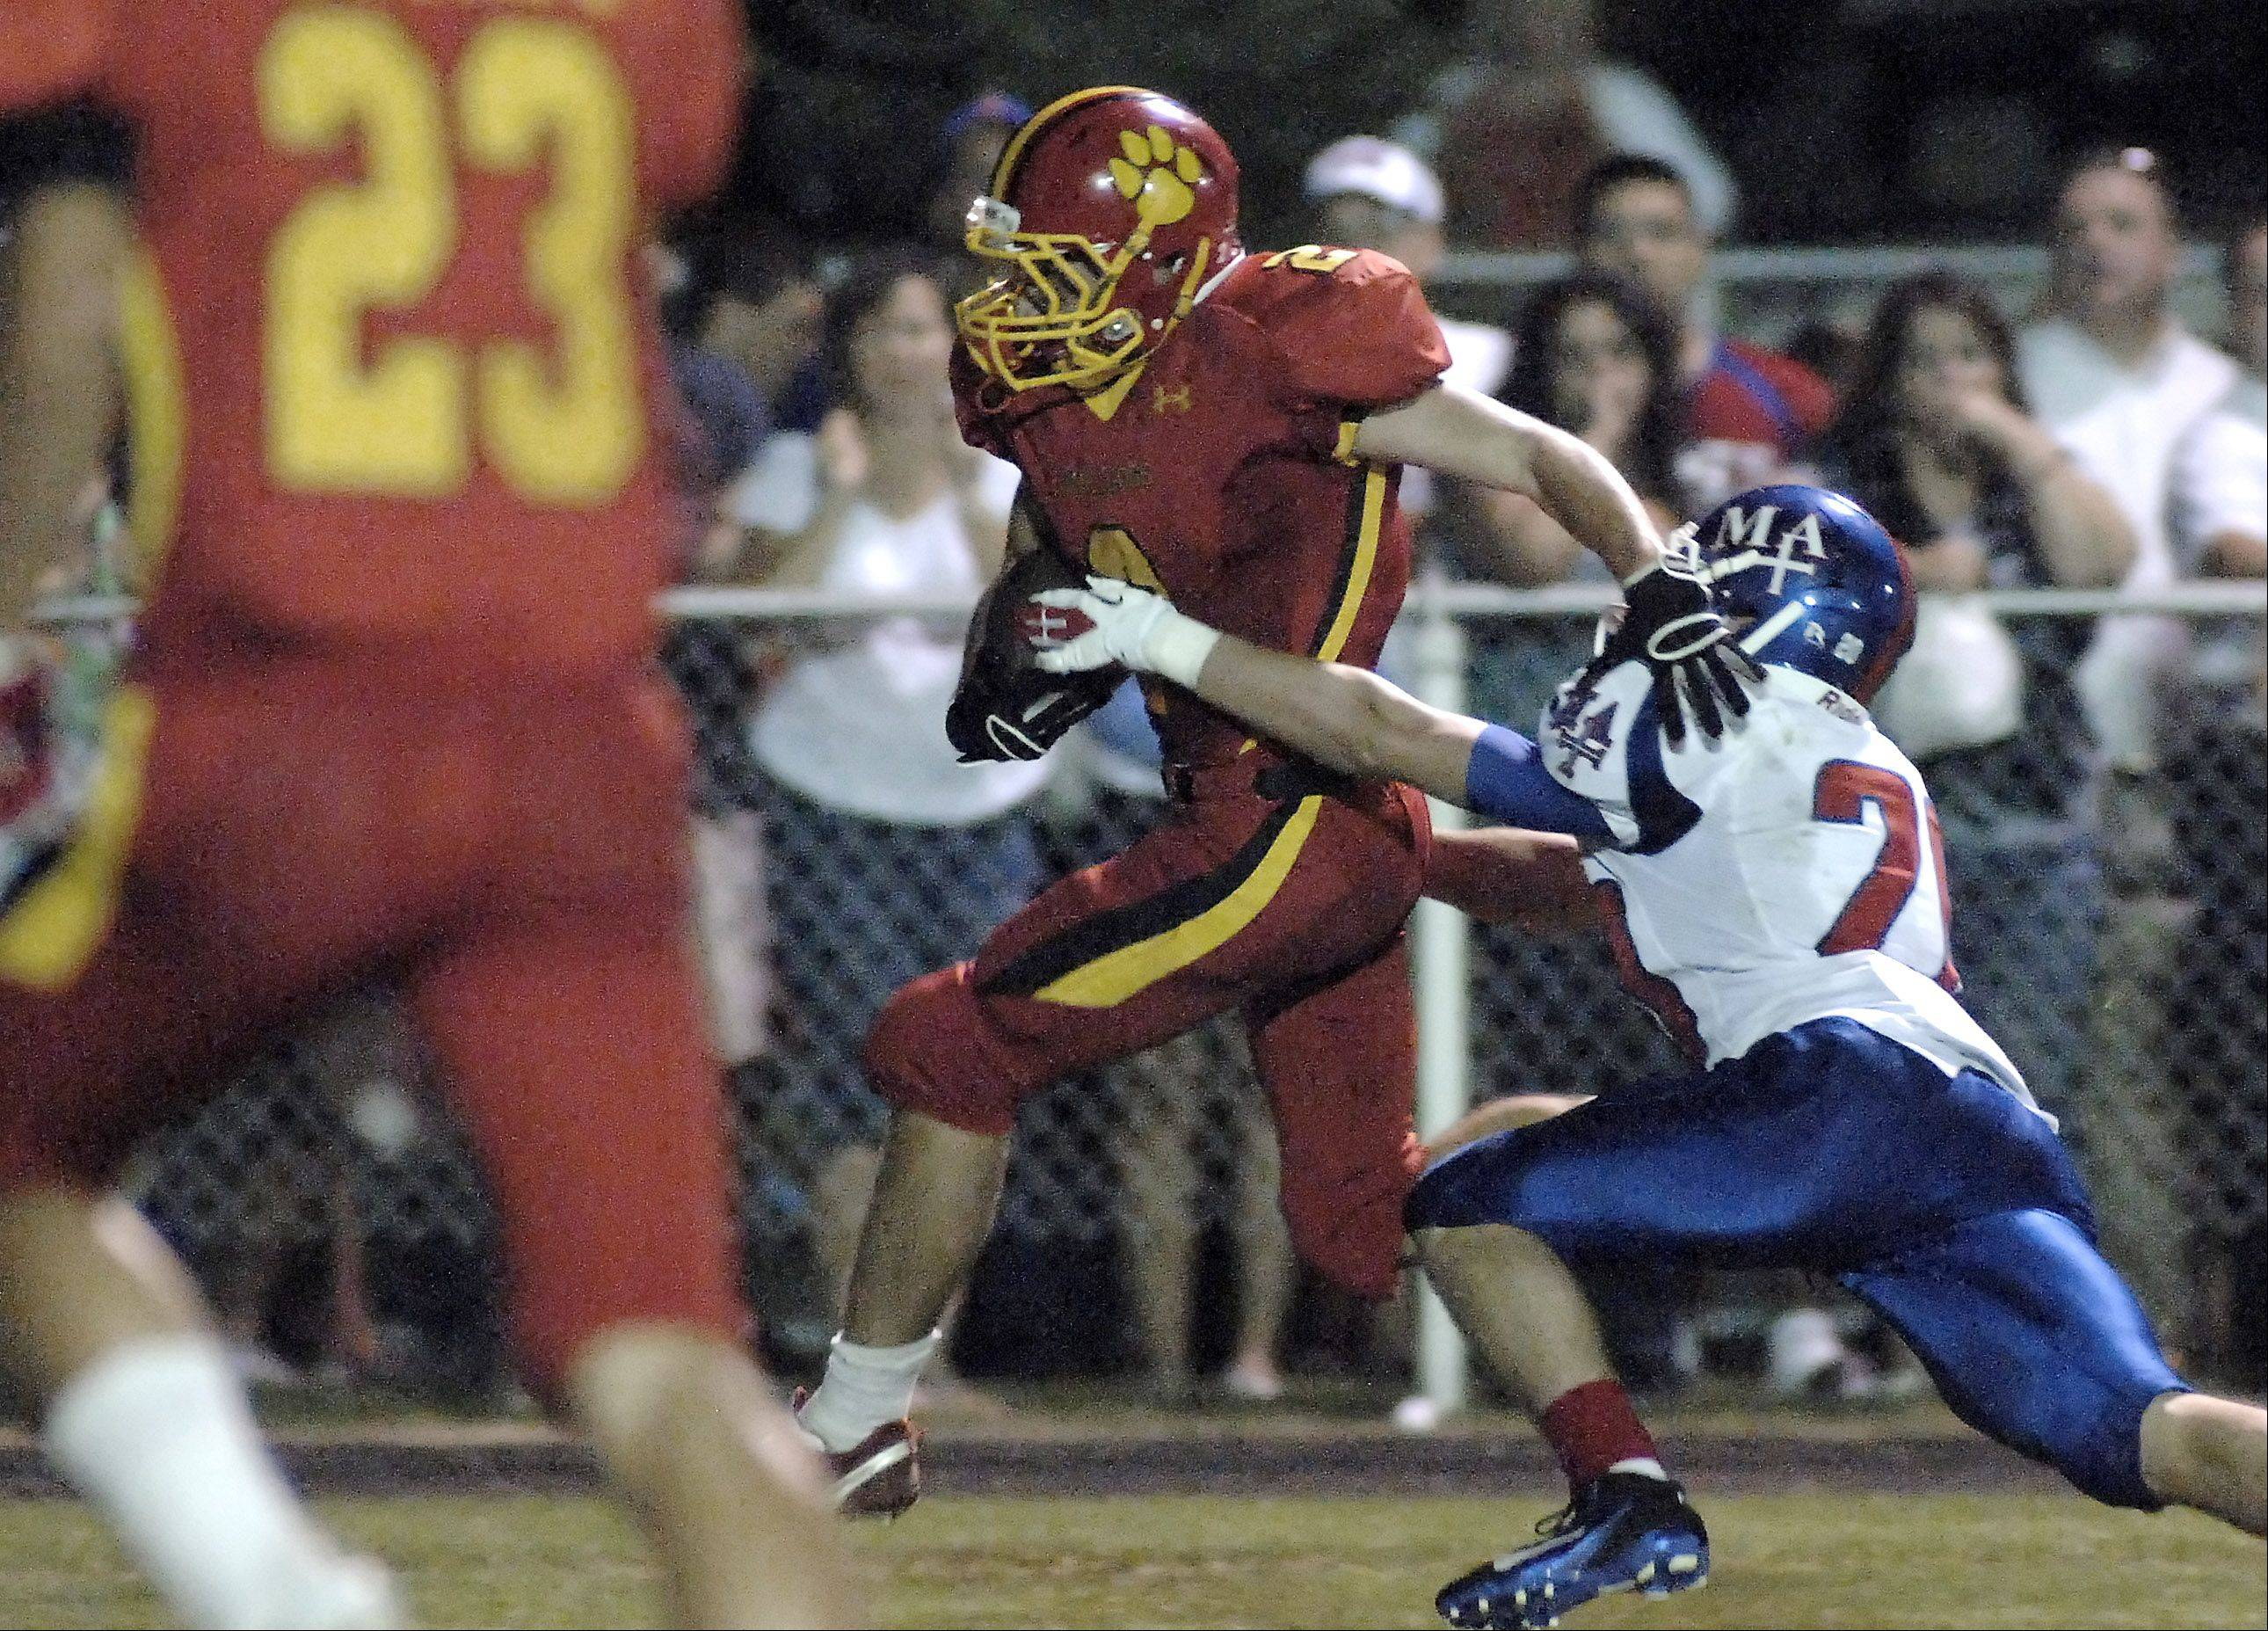 Batavia's Jon Gray shakes off Marmion Academy's Kyle Kozak on his way to a touchdown in the first quarter on Friday, August 26.